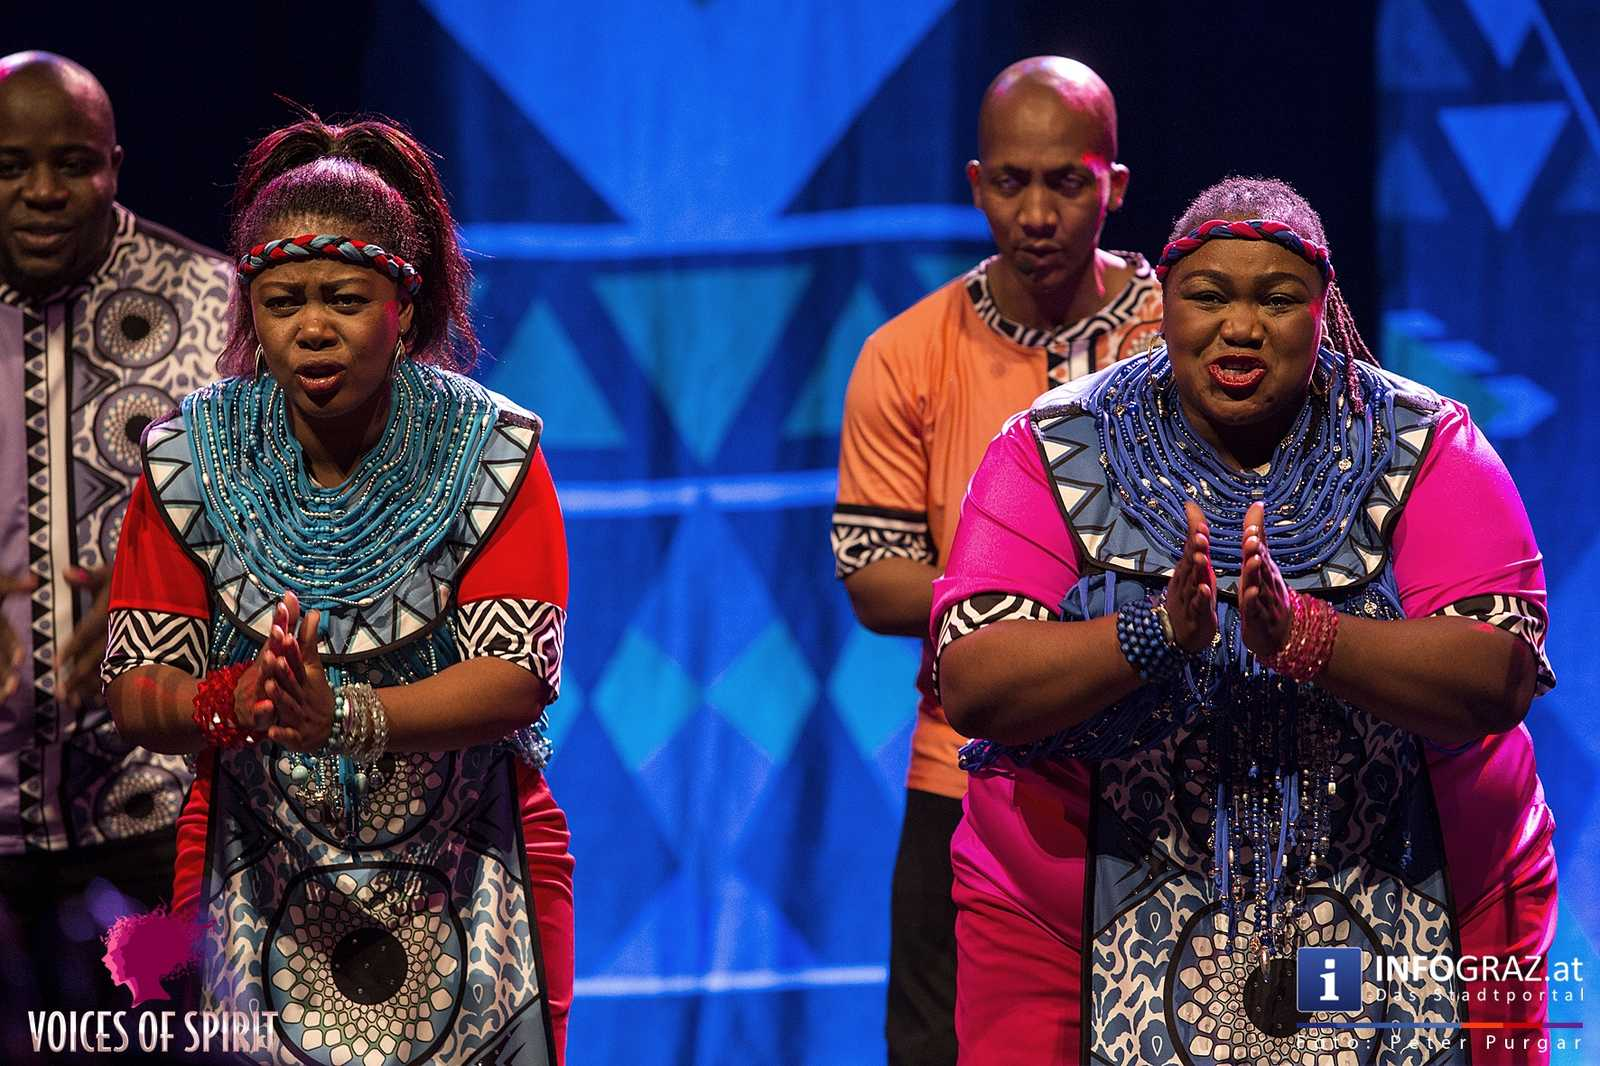 soweto gospel choir internationales chorfestival statdthalle graz voices of spirit eroeffnung festivals 2016 083